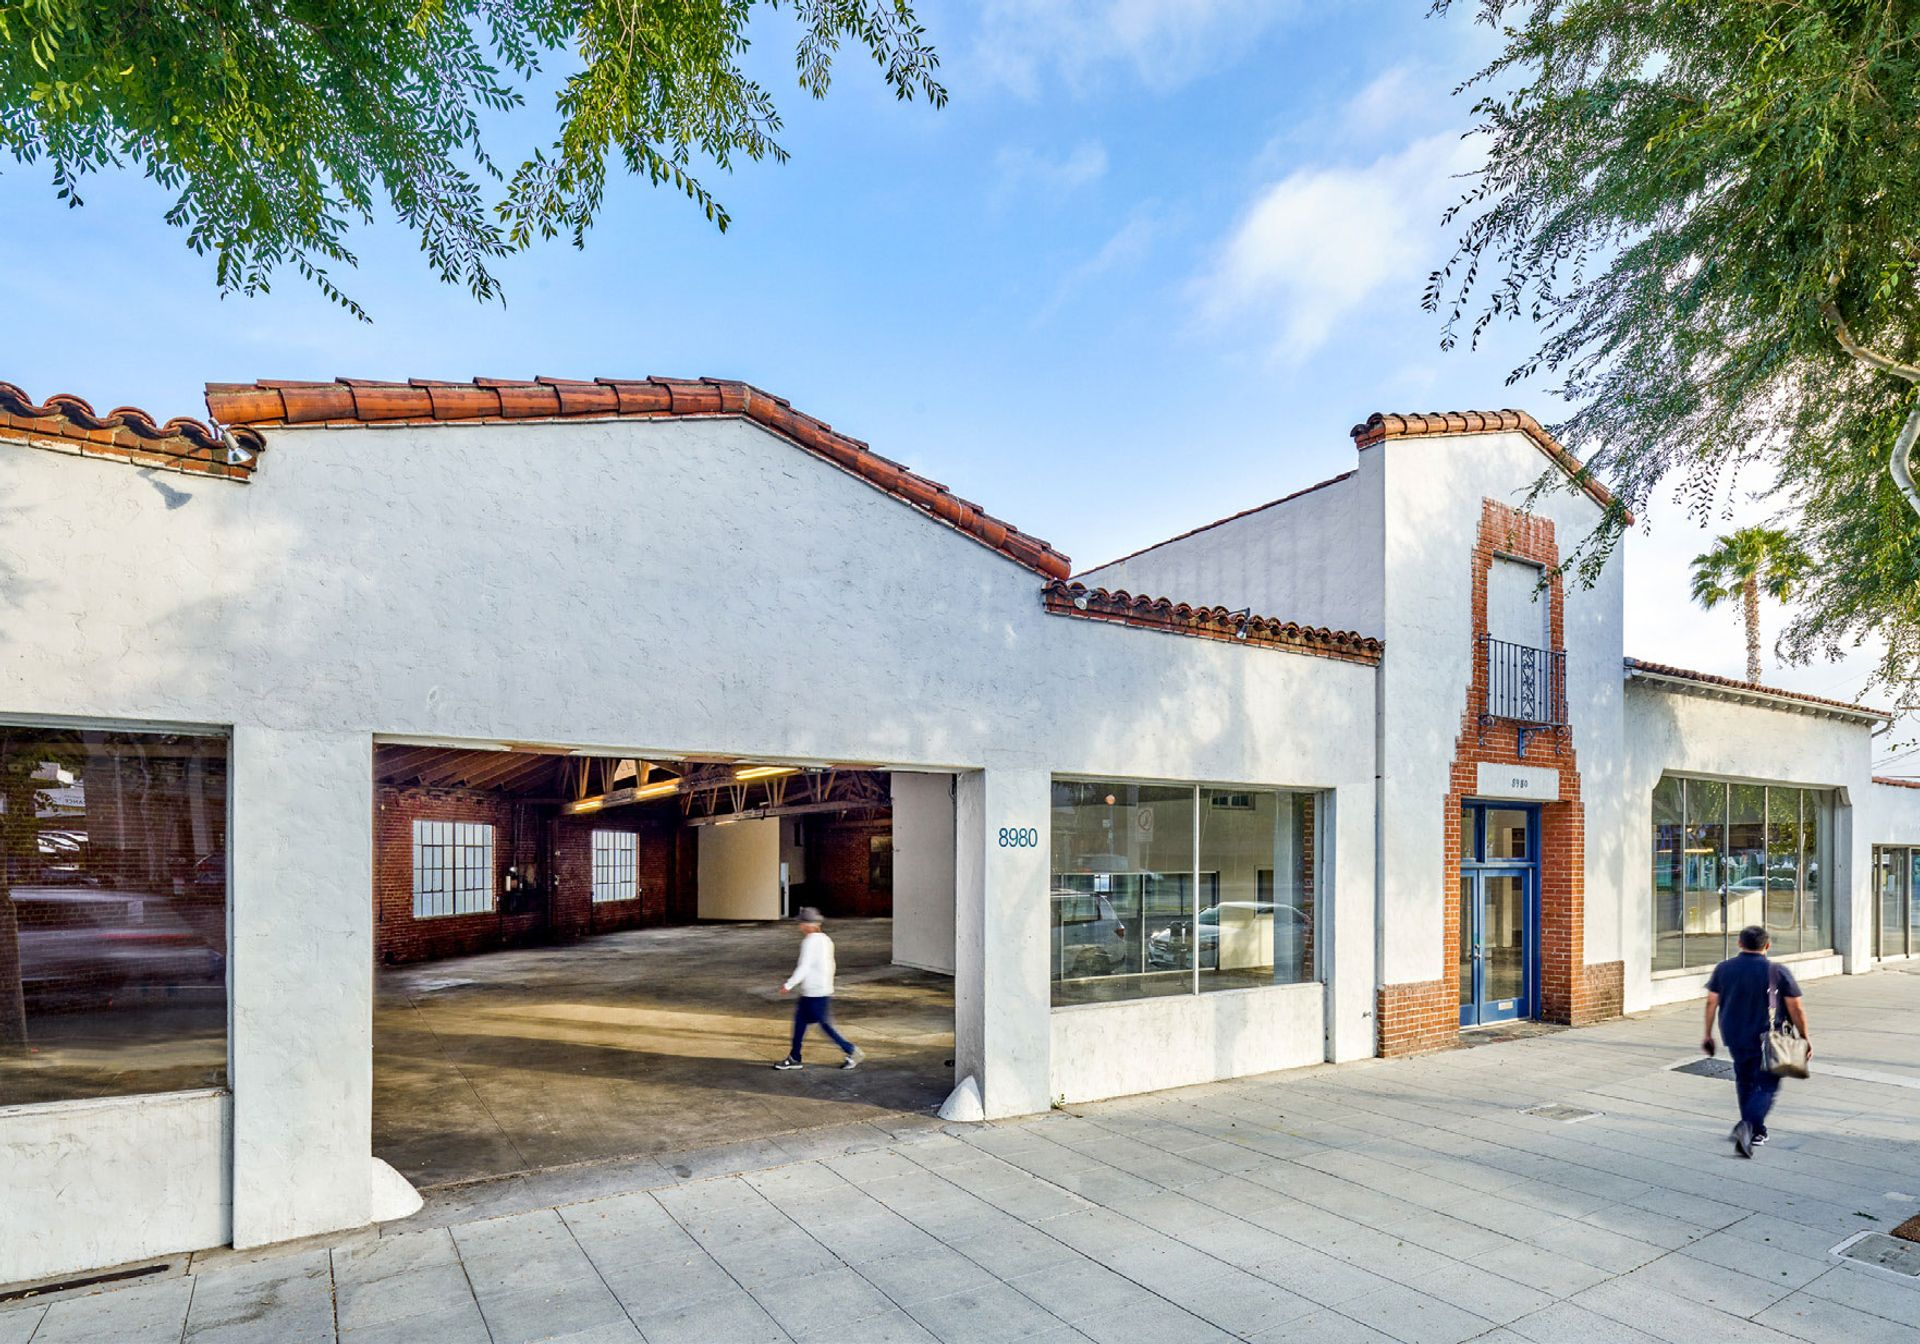 Hauser & Wirth plans to open its West Hollywood space in the autumn of 2022 Photo: Elon Schoenholz/Hauser & Wirth